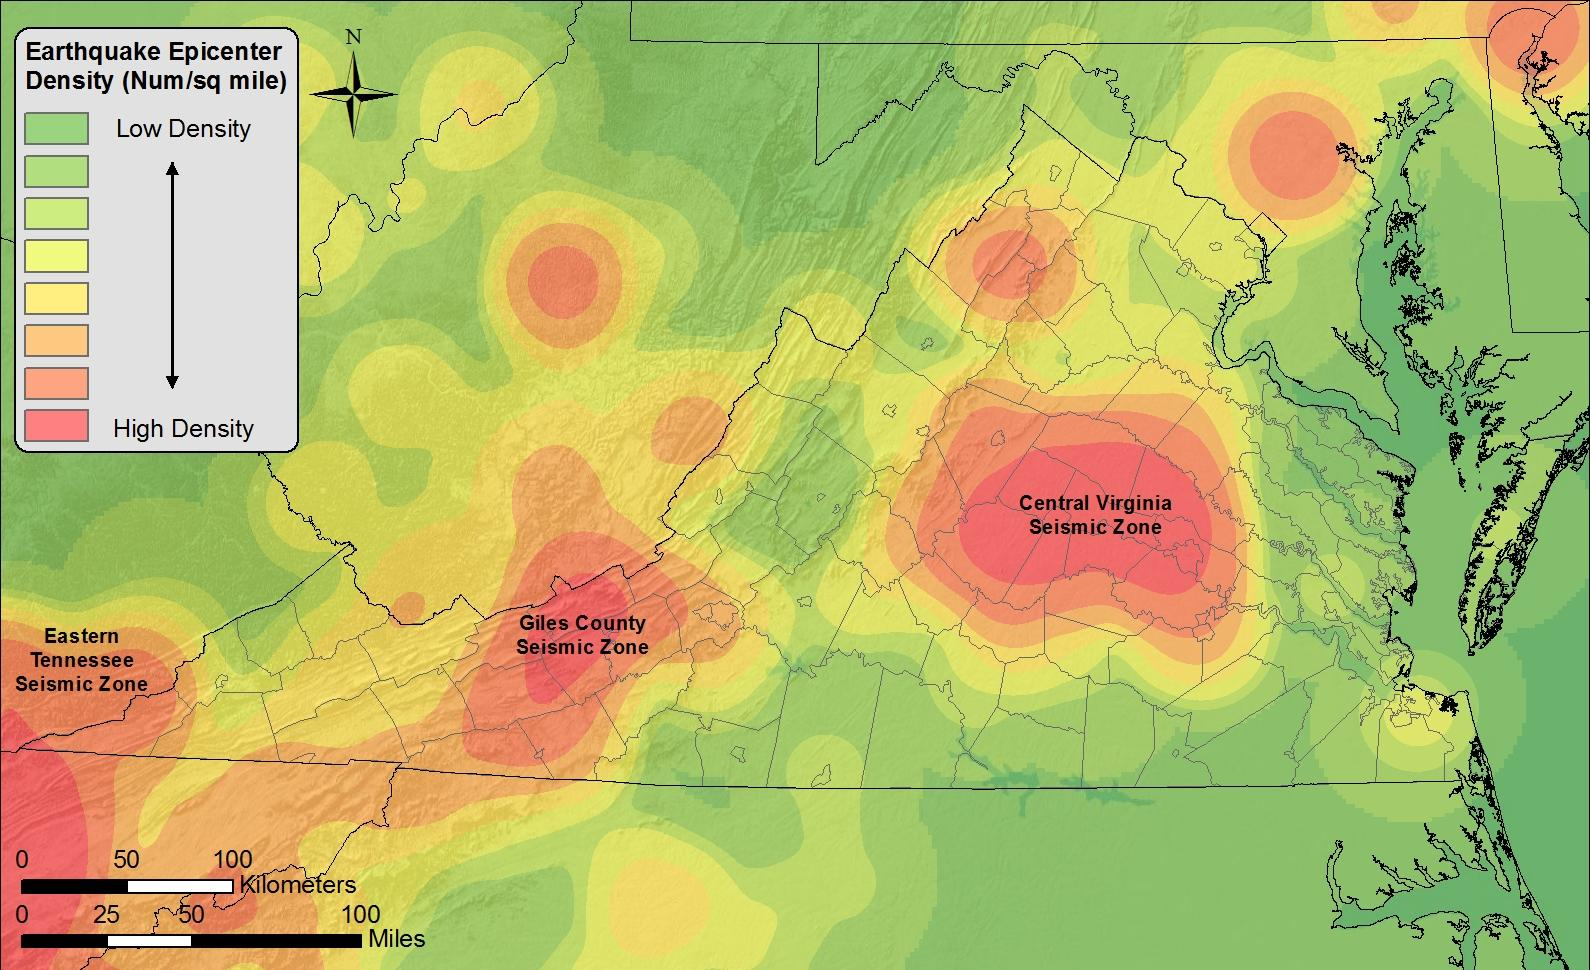 An earthquake history finding faults in virginia uva today virginias seismic zones are defined by areas of increased earthquake frequency the largest zone and site of the 2011 earthquake epicenter is in central gumiabroncs Gallery